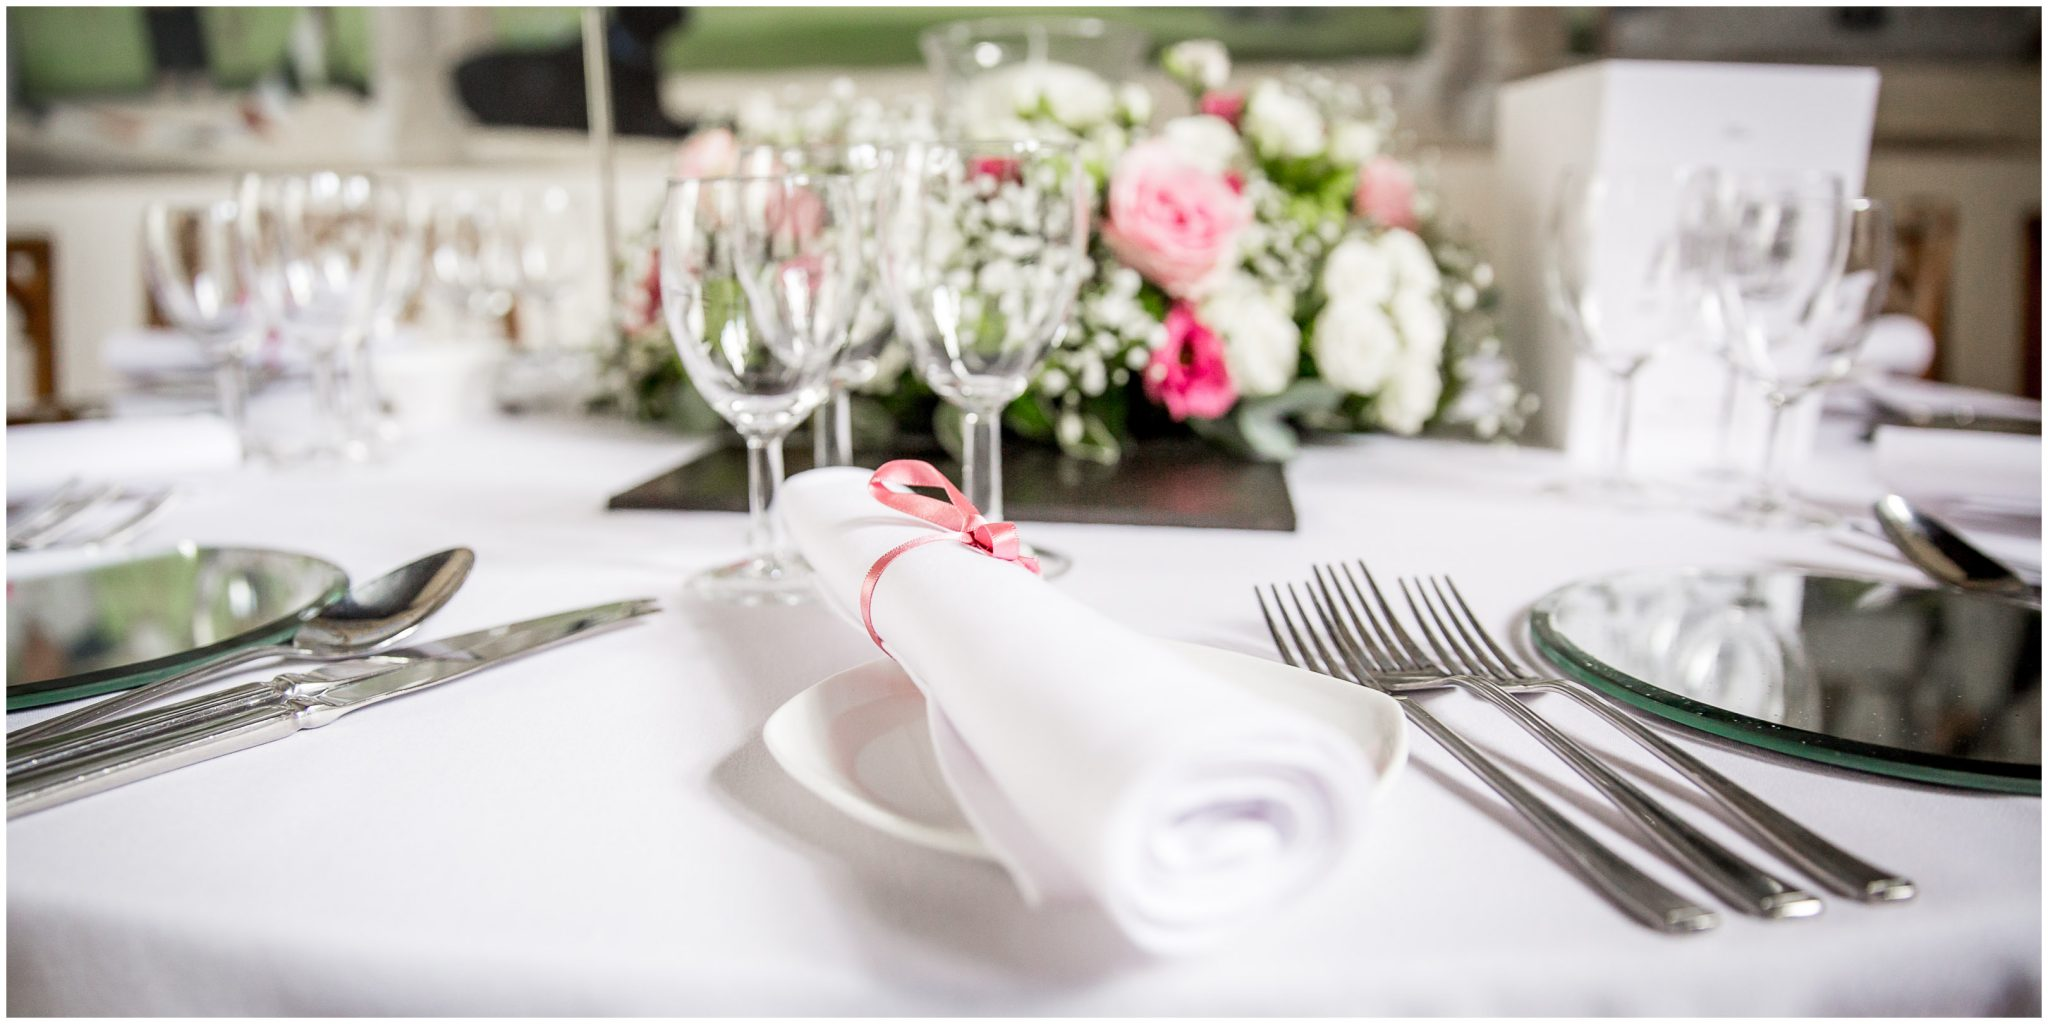 Place setting for wedding breakfast